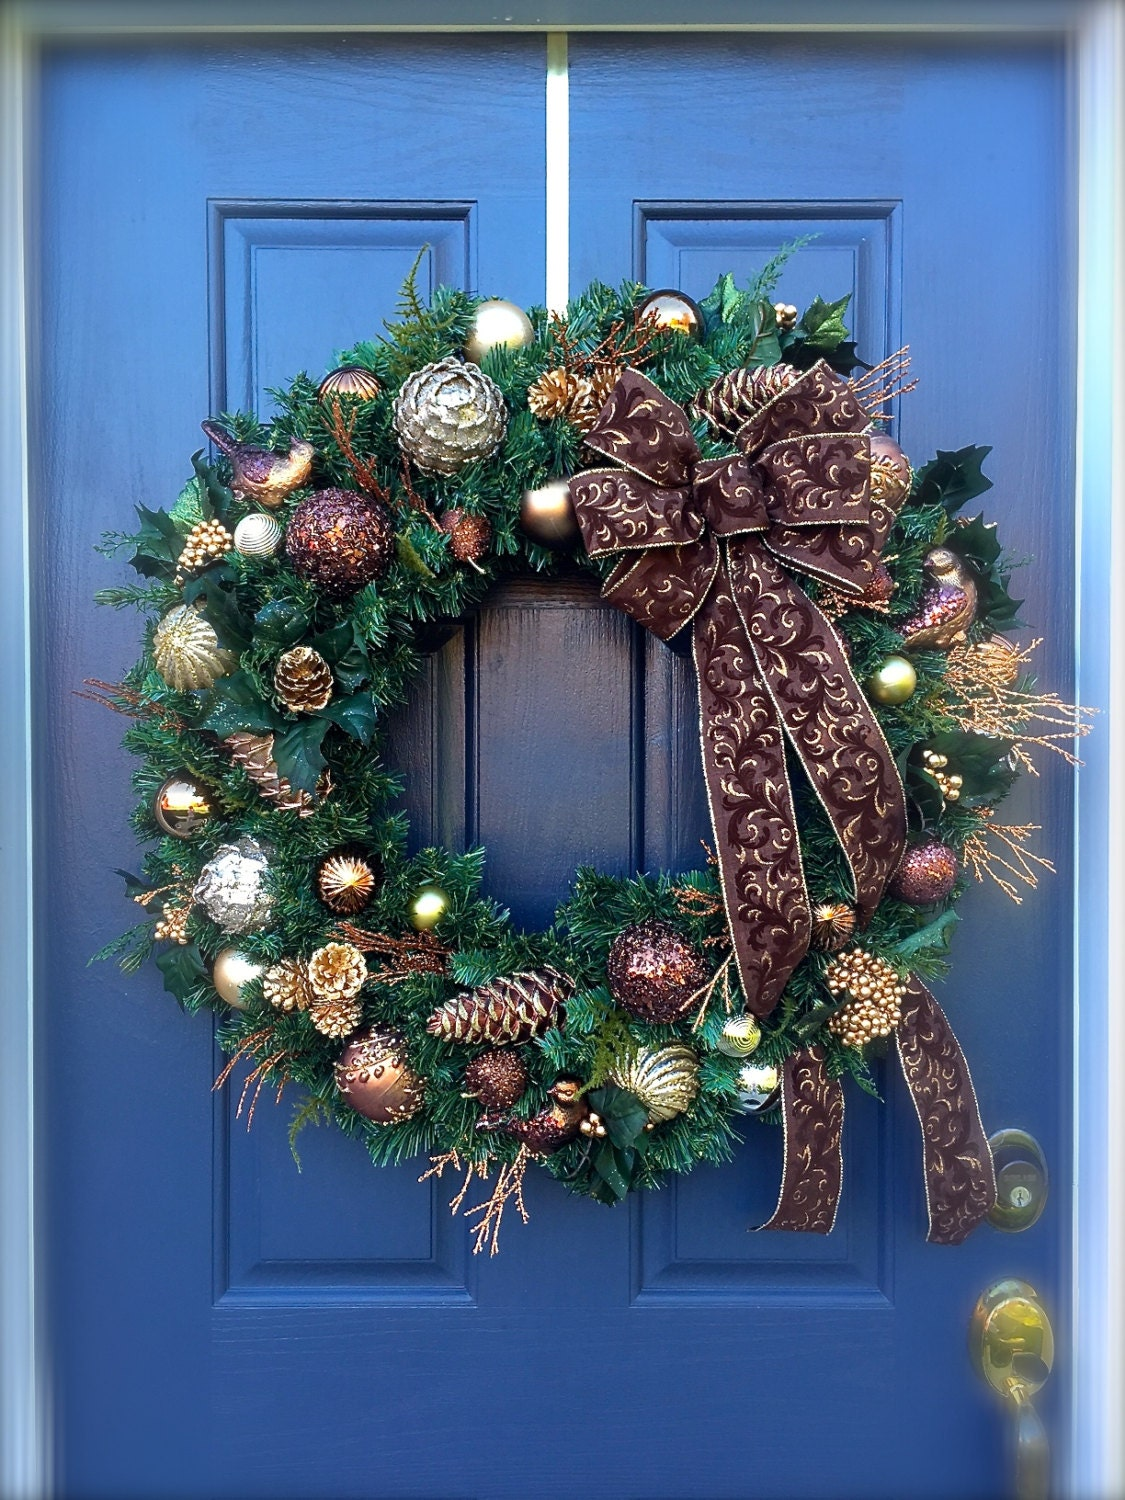 Large christmas door wreaths brown holiday decor gold wreaths Christmas wreath decorations